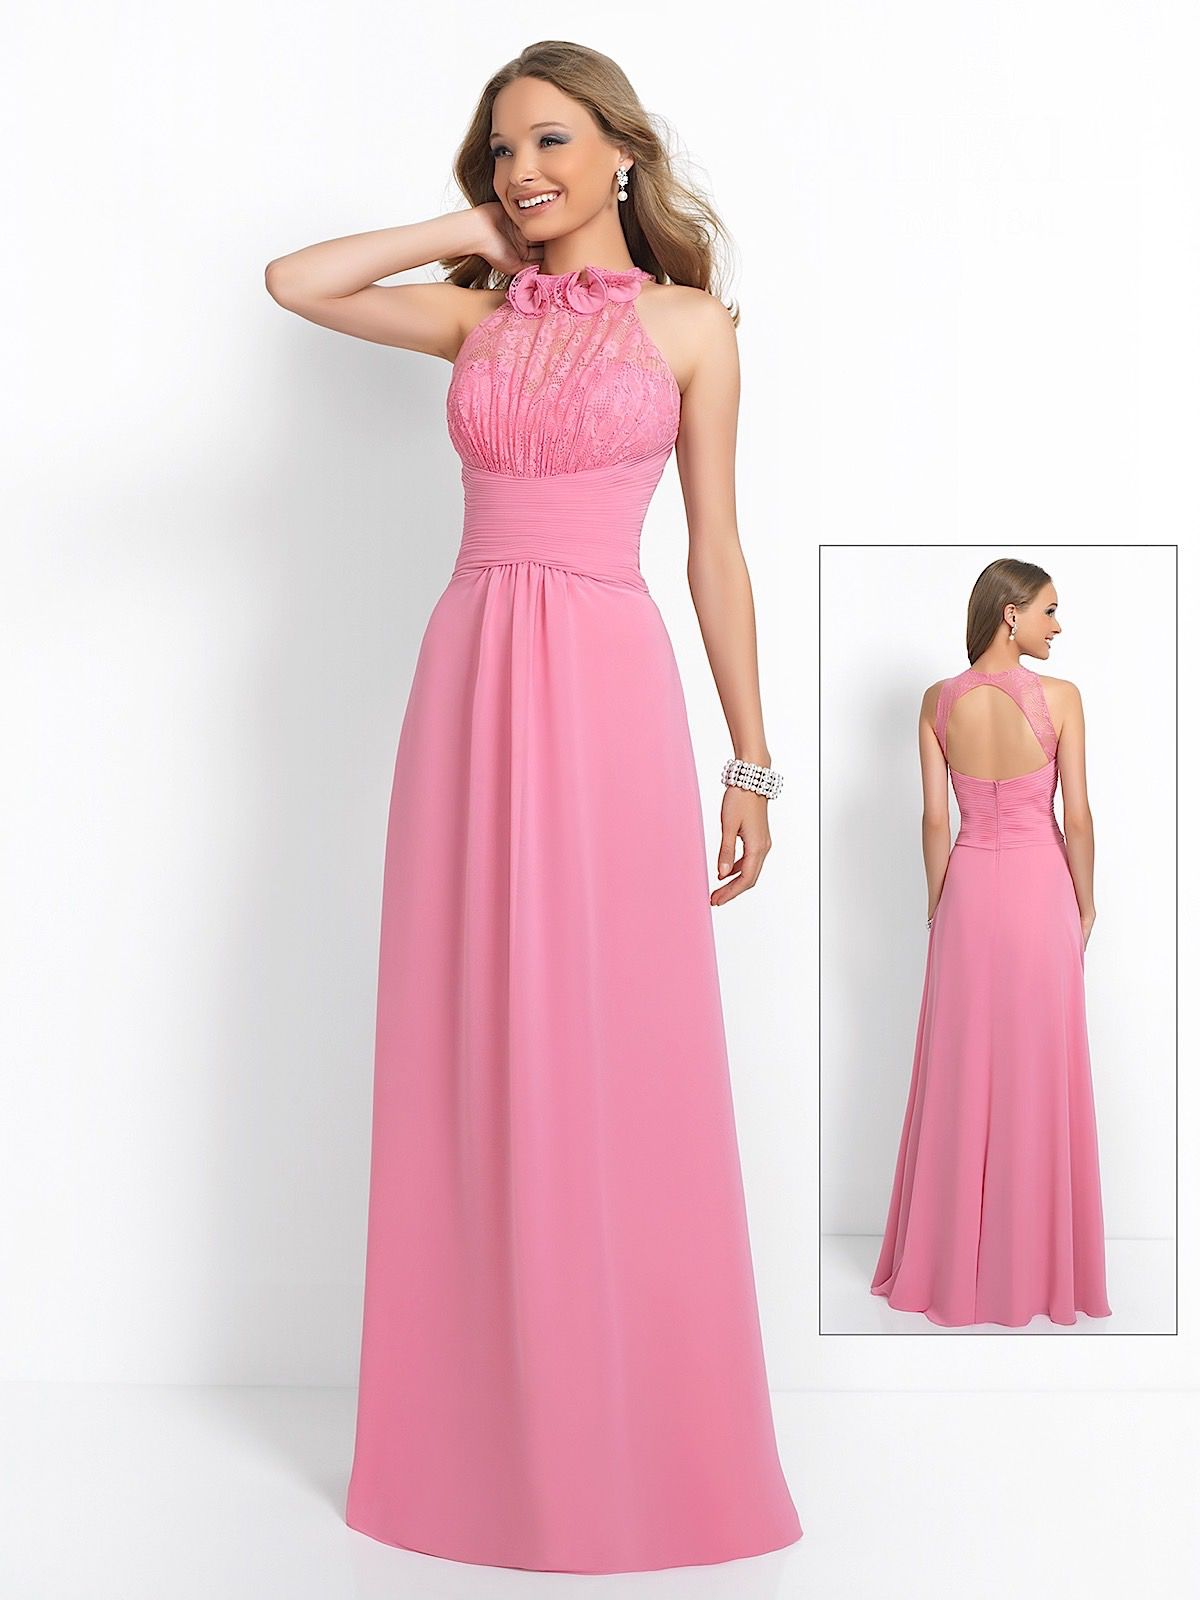 BRIDESMAIDS DRESS STYLE BM0184L FULL LENGTH - The Bridal Company